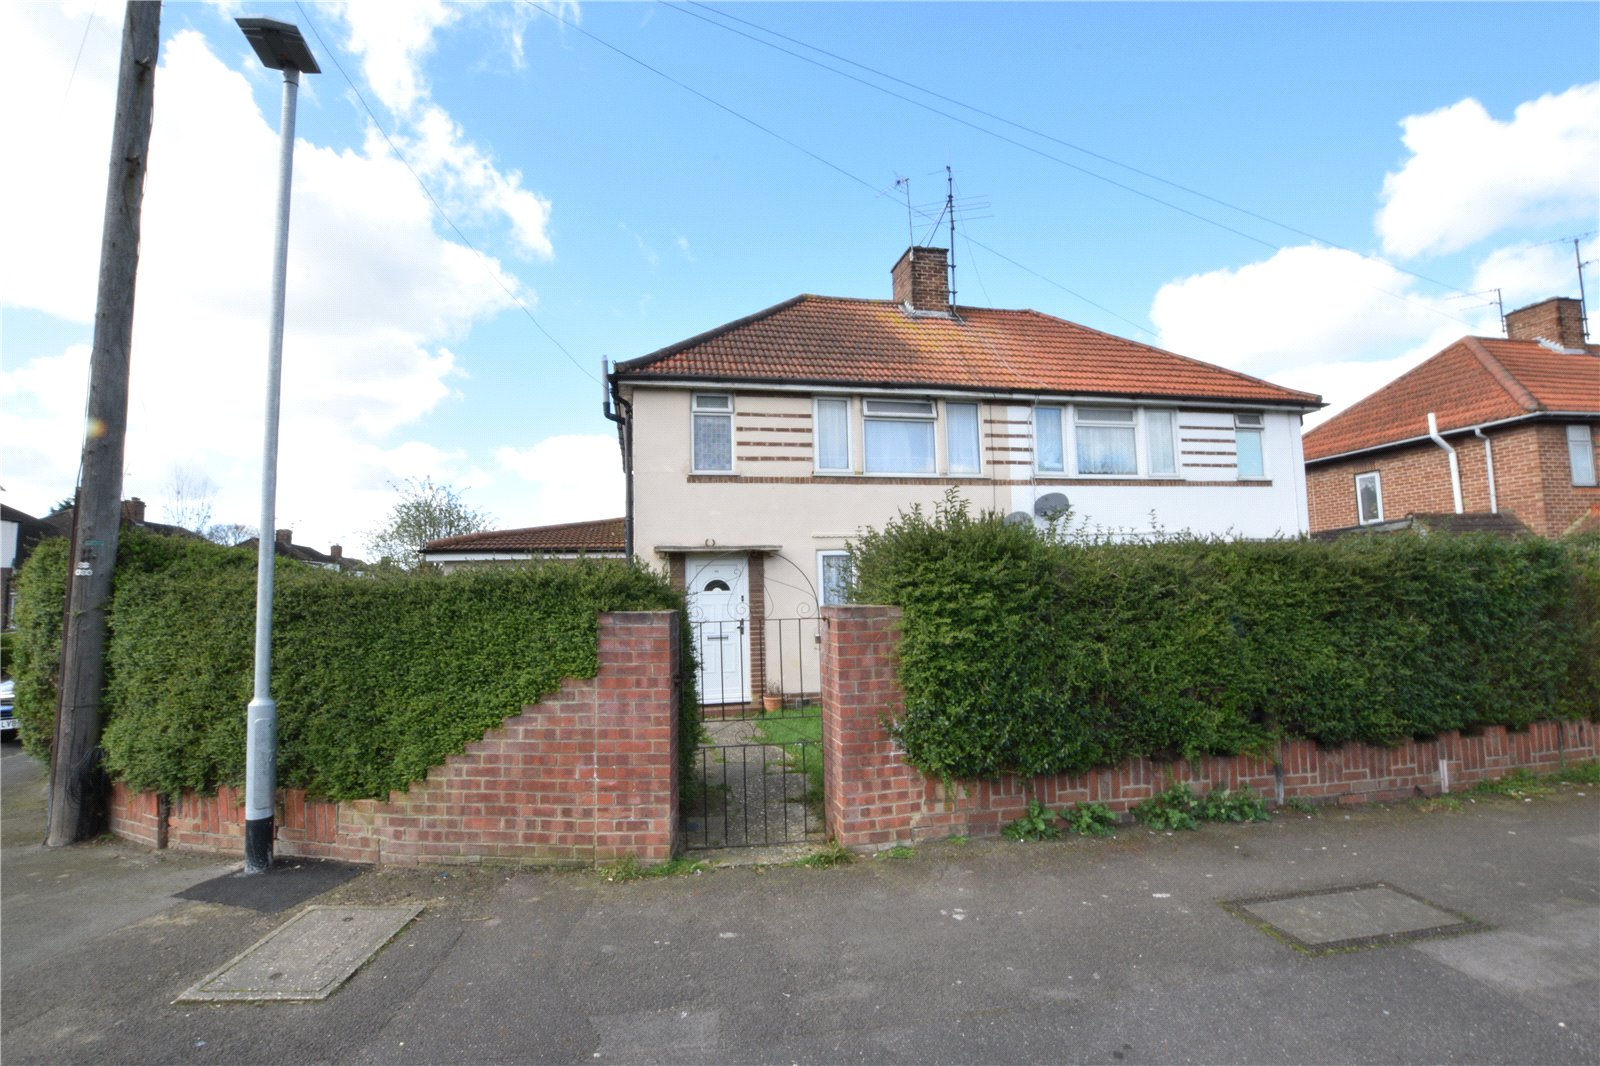 4 Bedrooms Semi Detached House for sale in Blandford Road, Reading, Berkshire, RG2